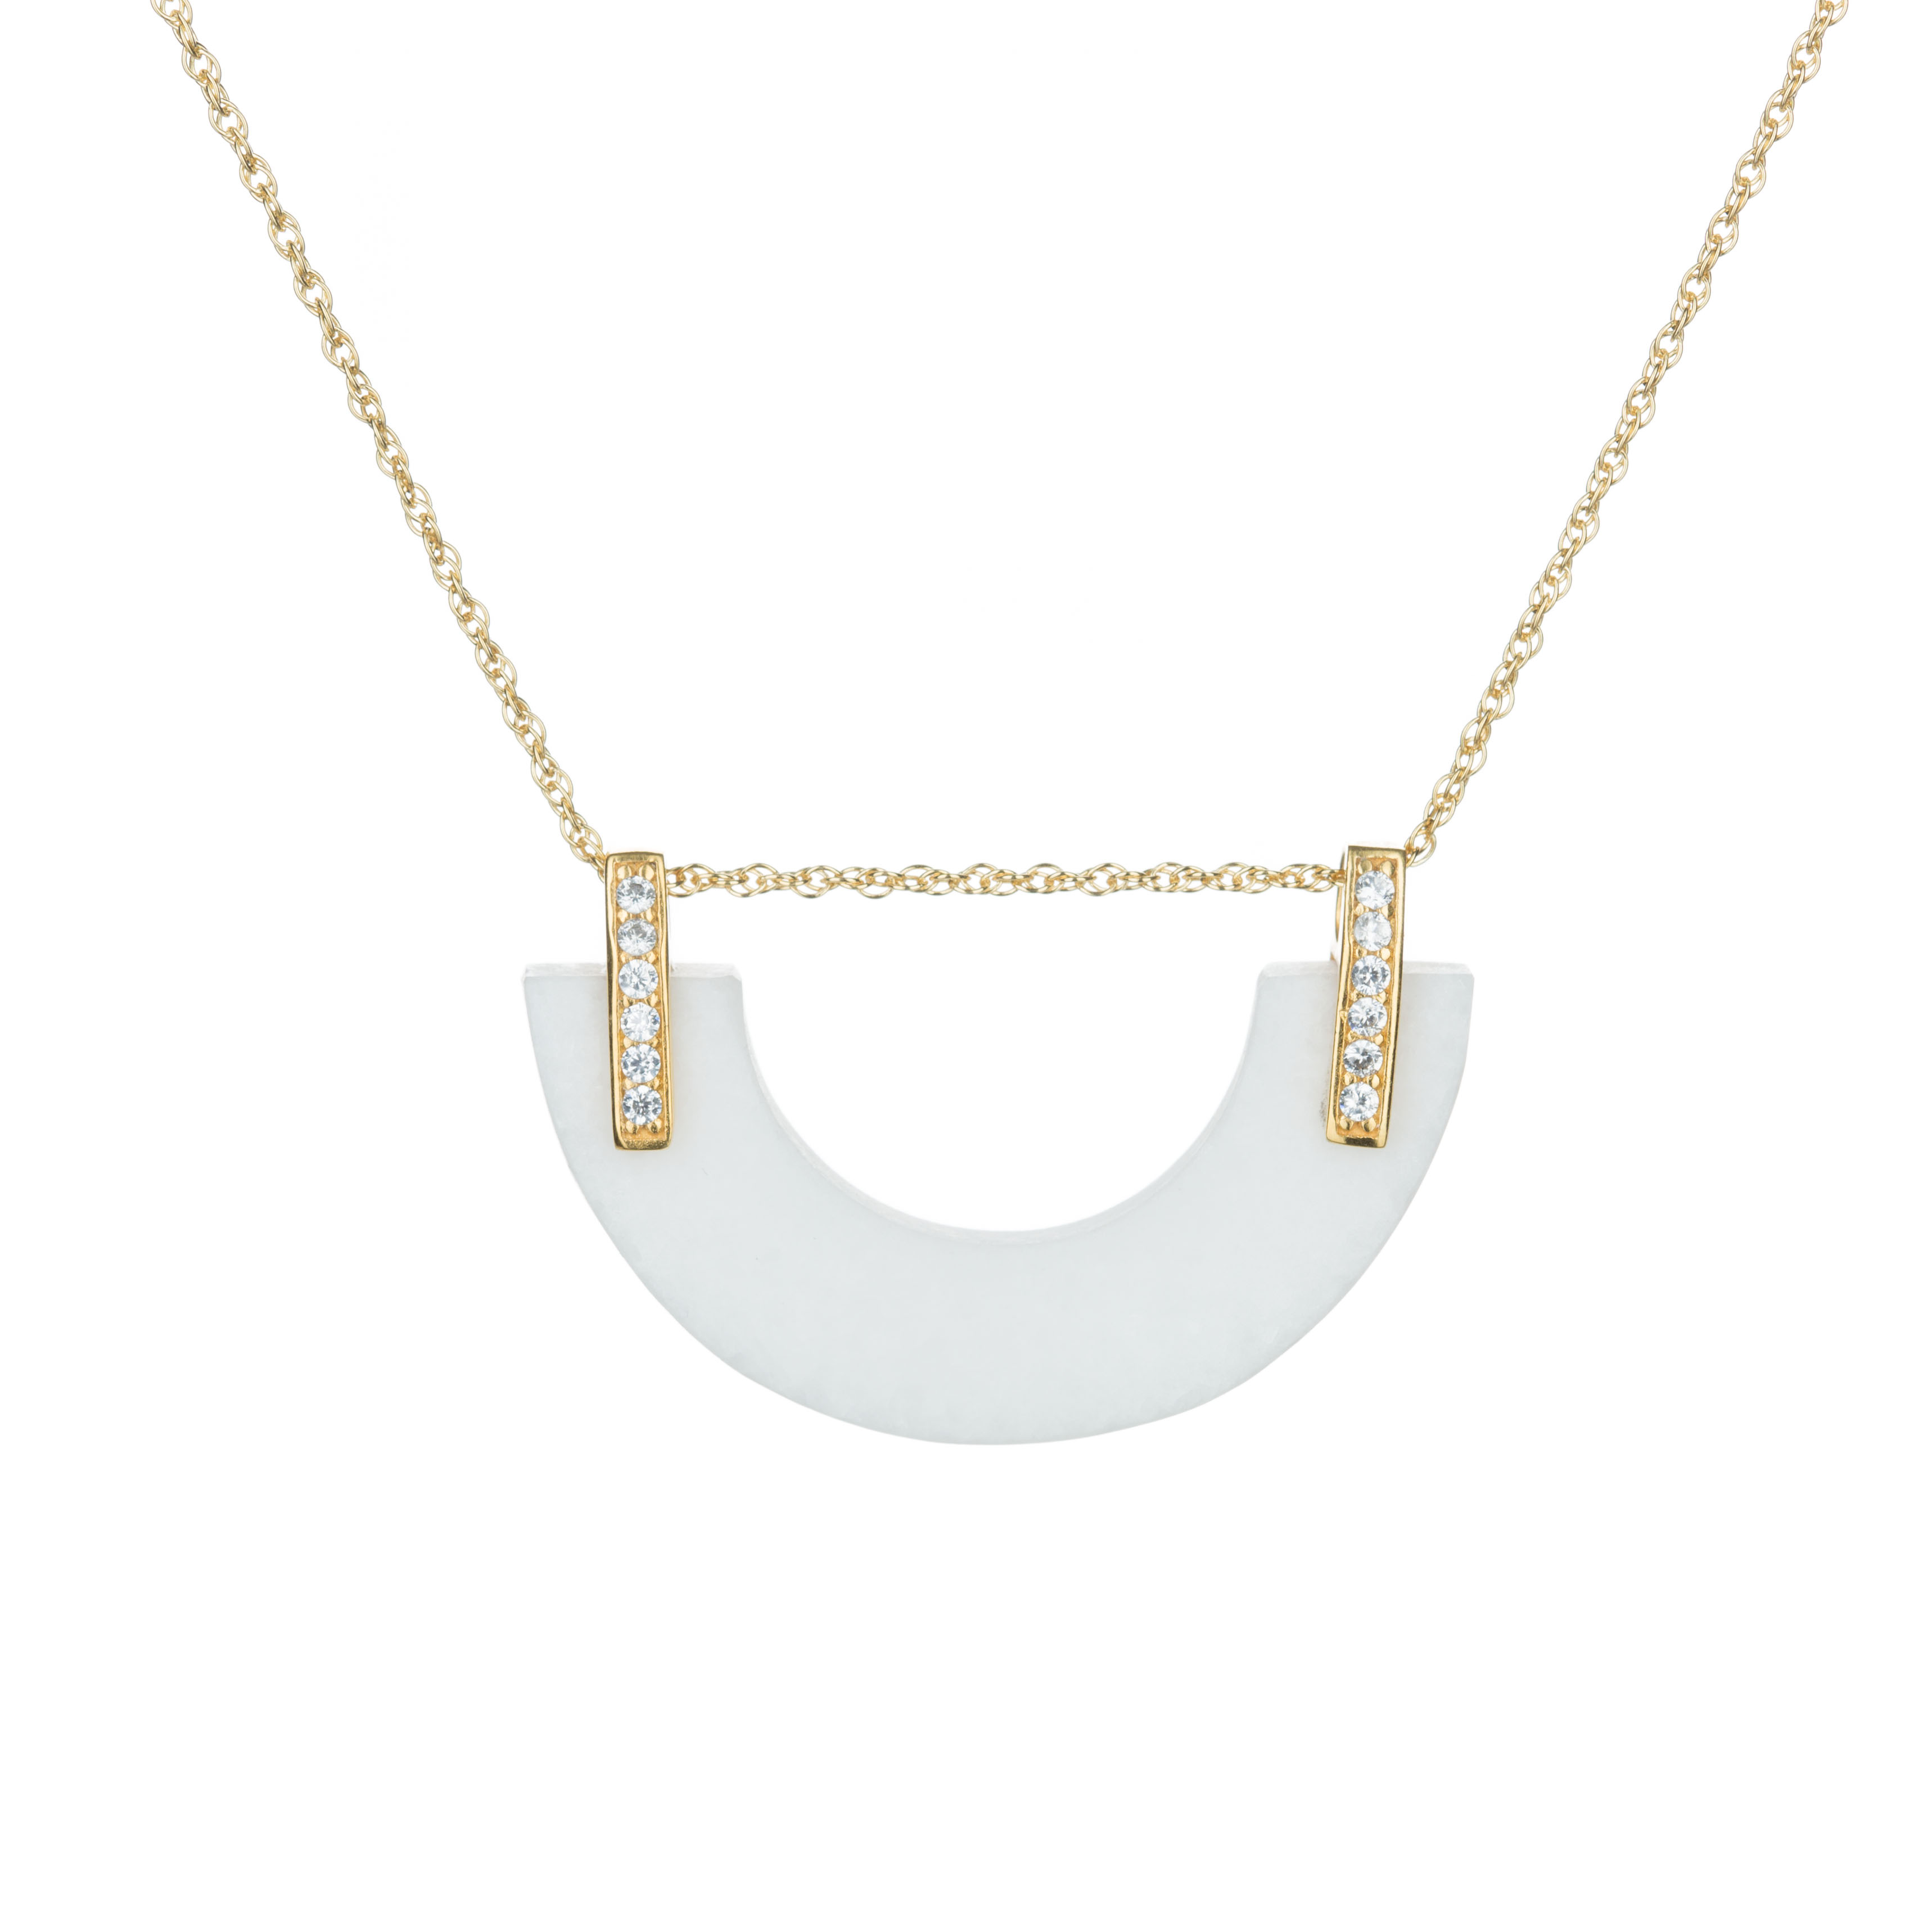 the necklace advice column Phiten necklaces have become the must-have accessory for many professional athletes, especially  next: 3 tips for making staff feel valued.